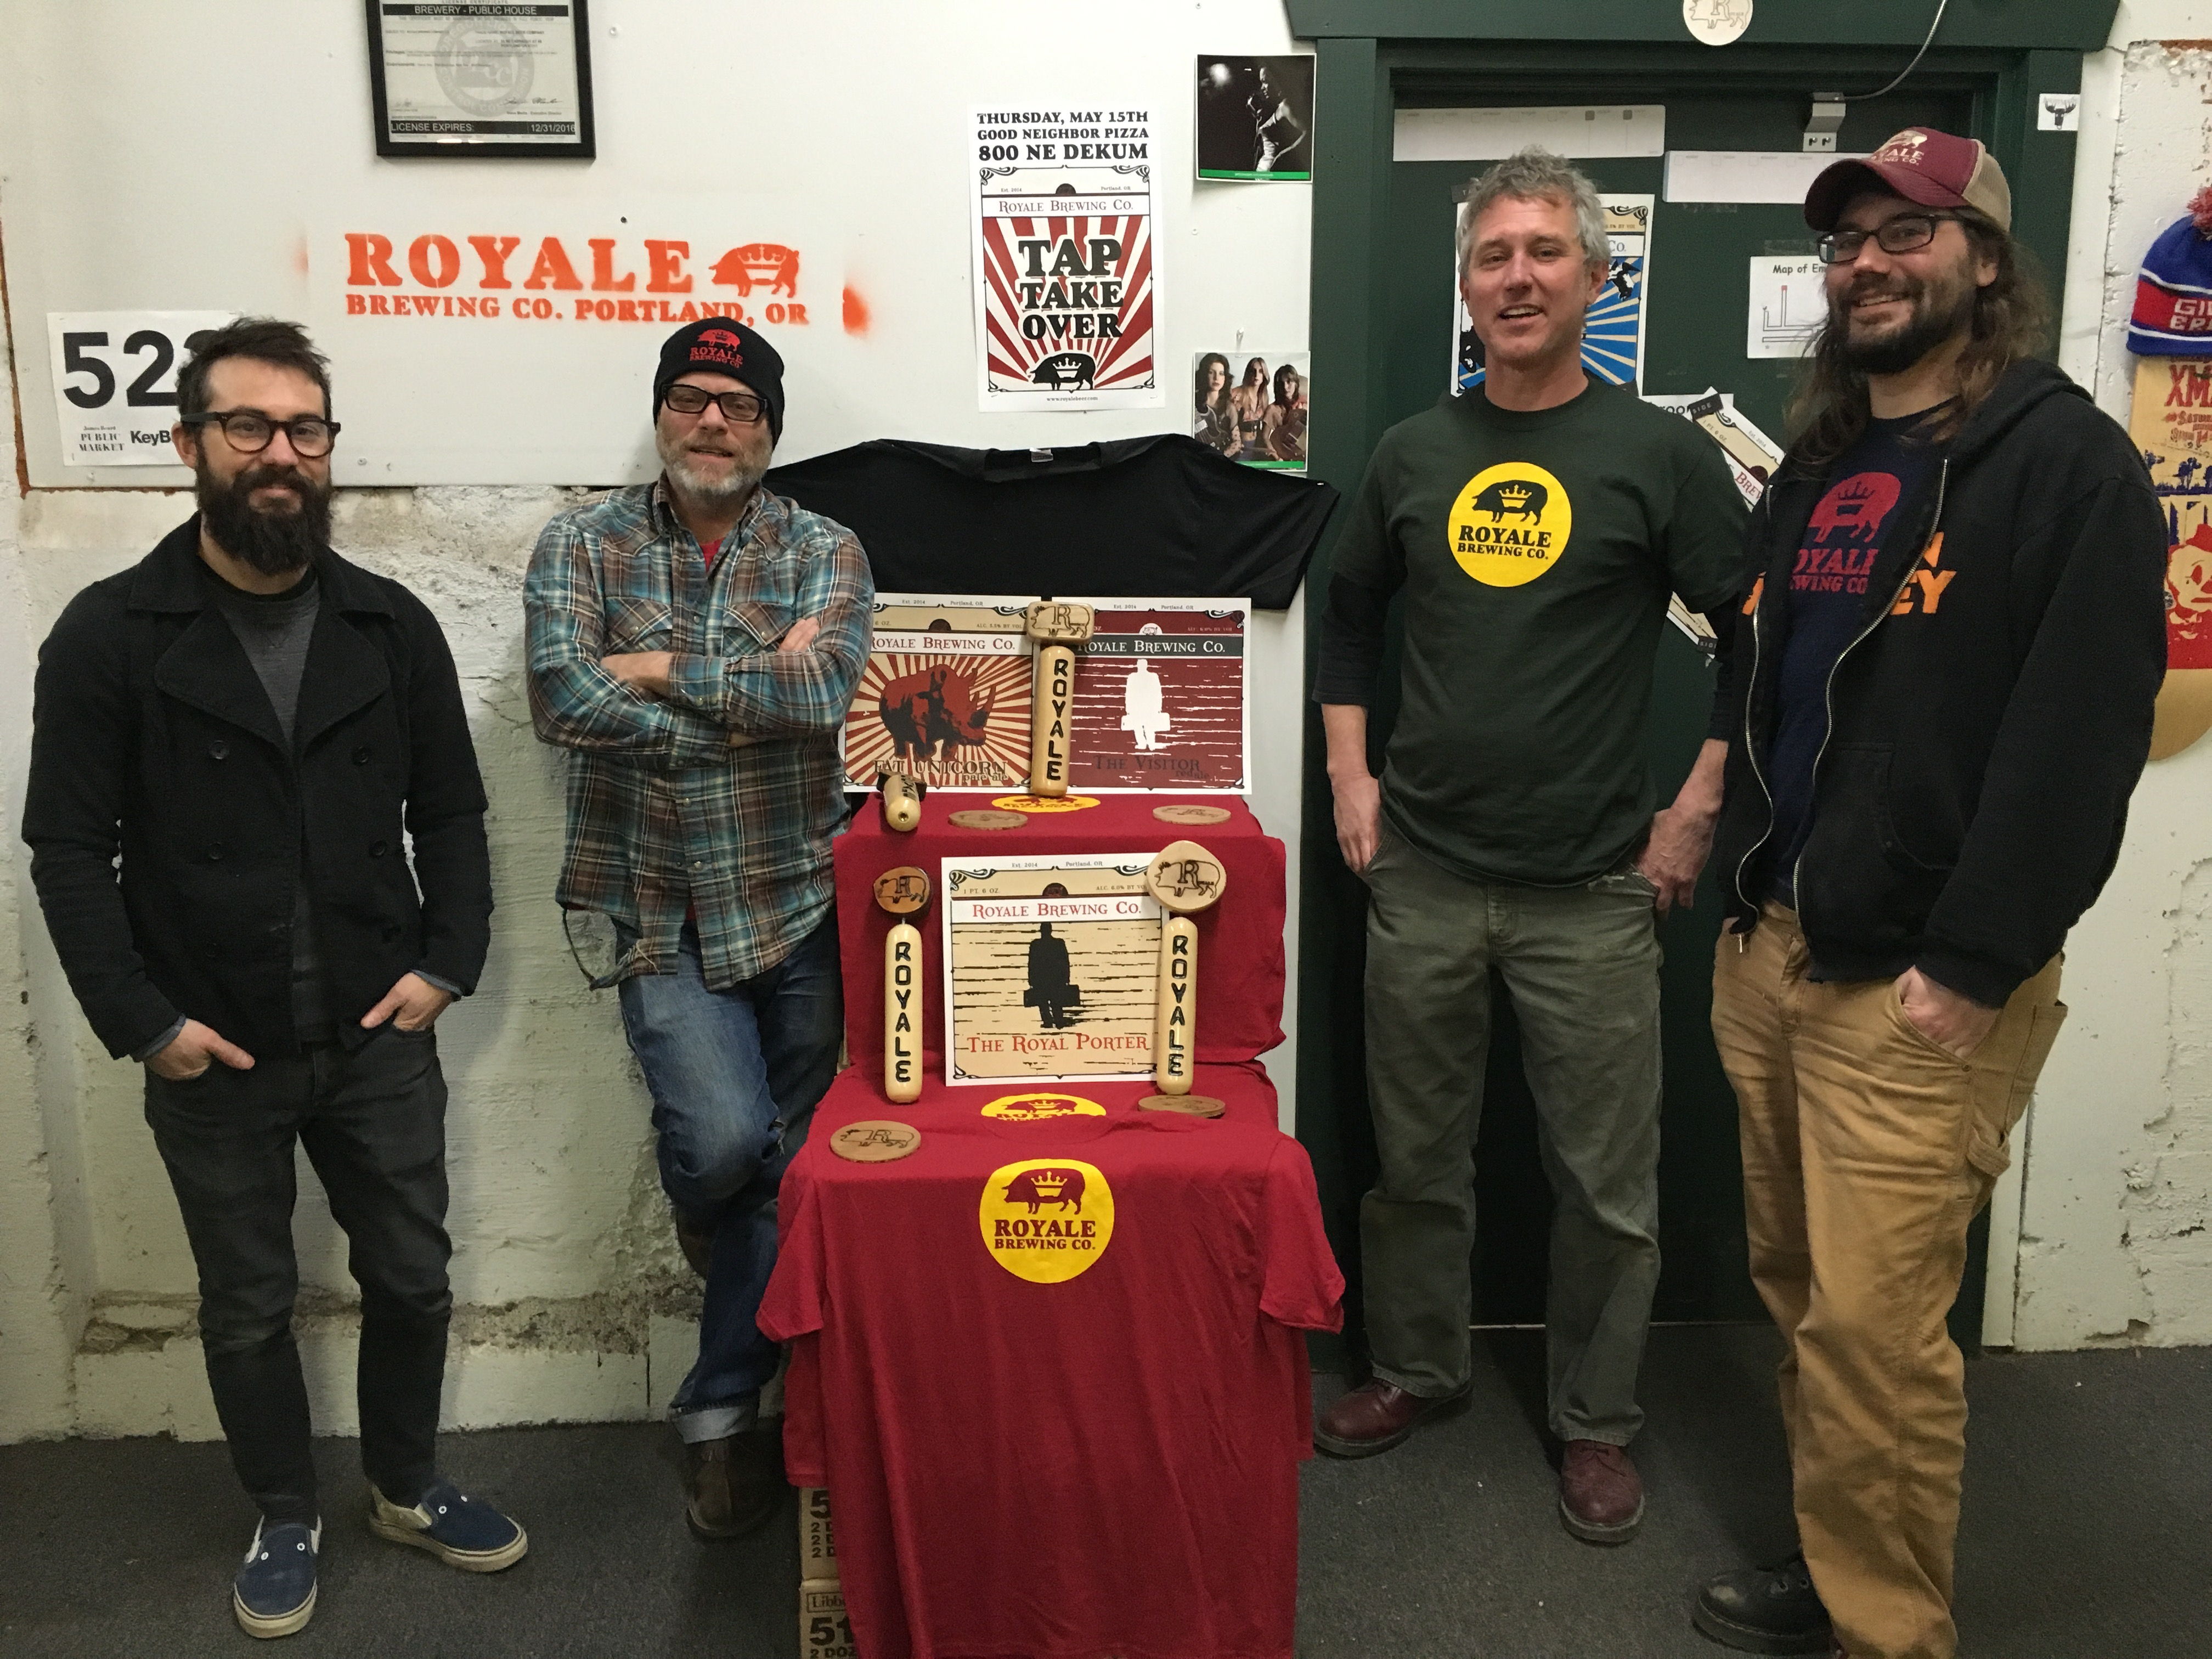 The crew at Royale Brewing: Paul Rey, Jack Houston, Mike Weksler and Paul Bastian.